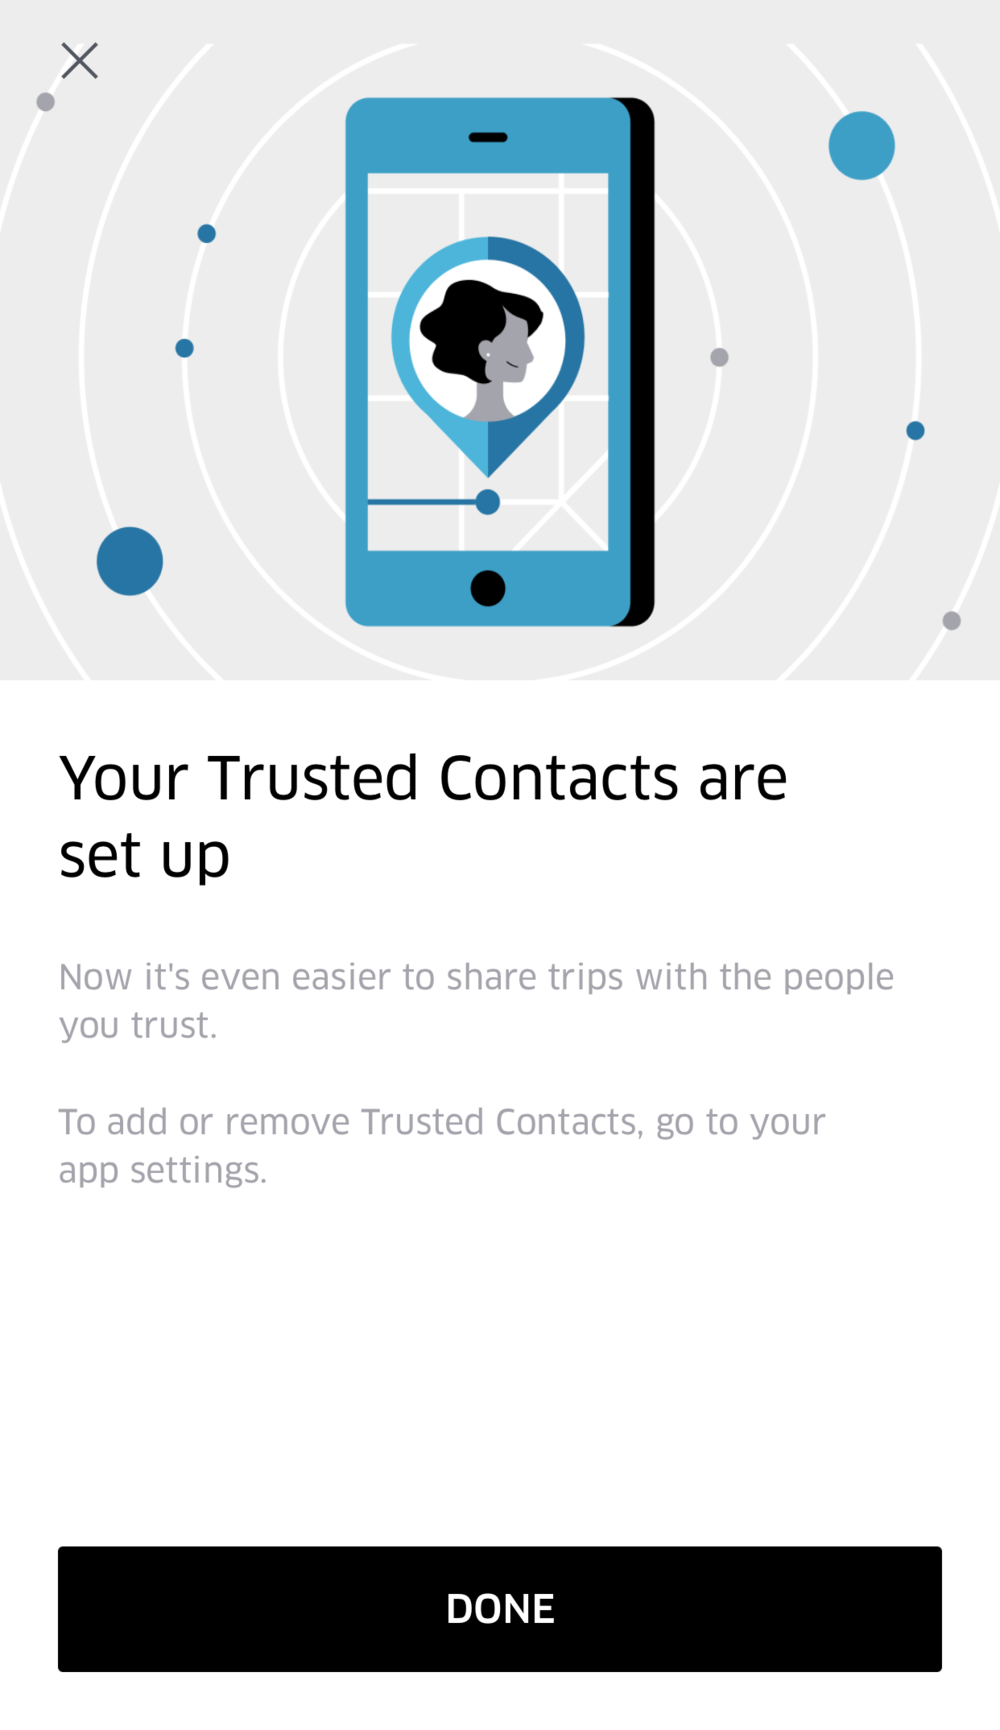 uber-trusted-contacts-feature3.PNG